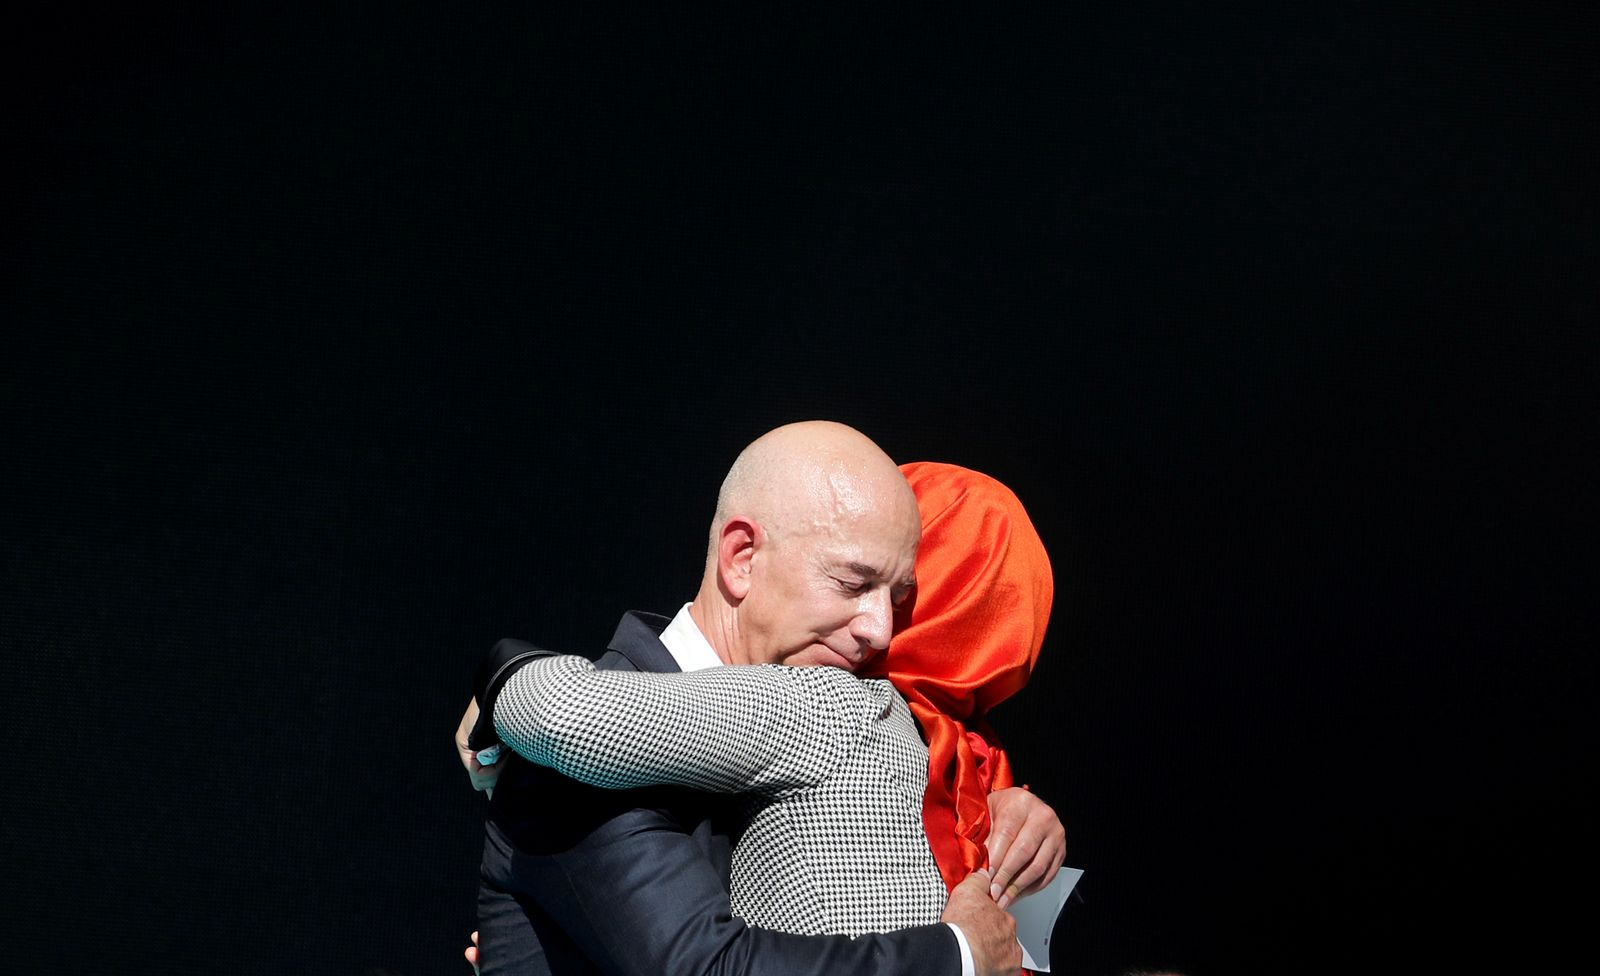 Hatice Cengiz, fiancee of the murdered Saudi journalist Jamal Khashoggi and Jeff Bezos, founder of Amazon and Blue Origin, embrace each other as they attend a ceremony marking the first anniversary of Khashoggi's killing at the Saudi Consulate in Istanbul